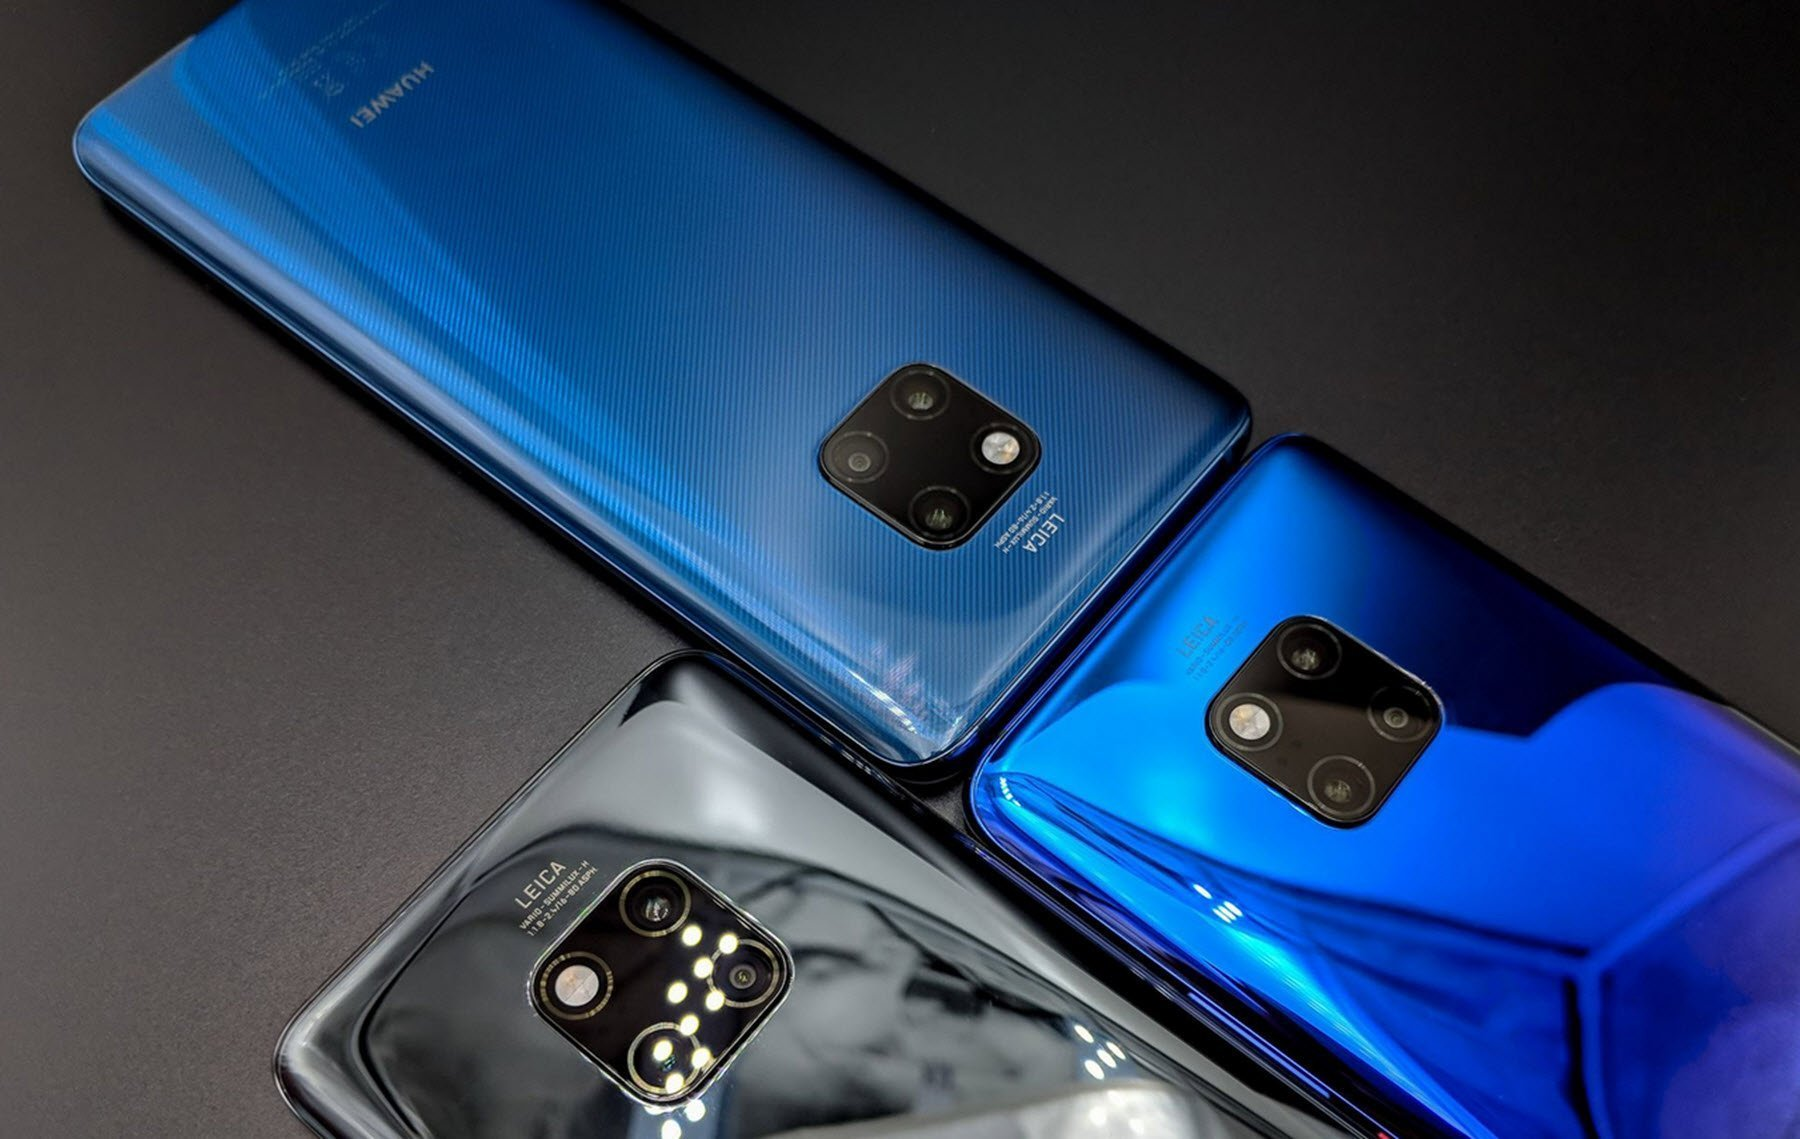 Honor 20 Series smartphones confirmed to receive Android Q update